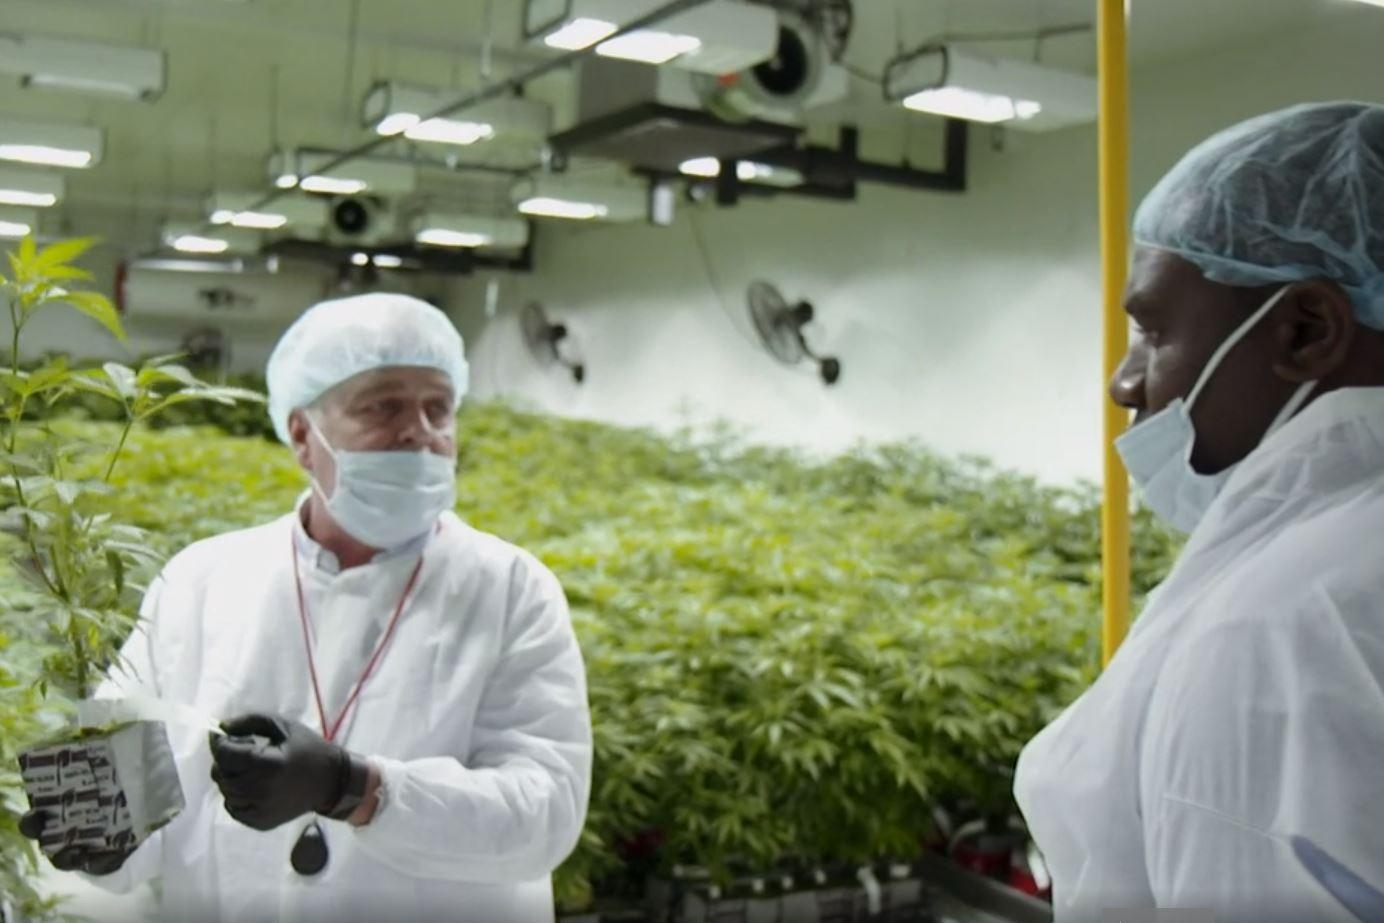 Cannabis to be 'fully legal in UK within years'